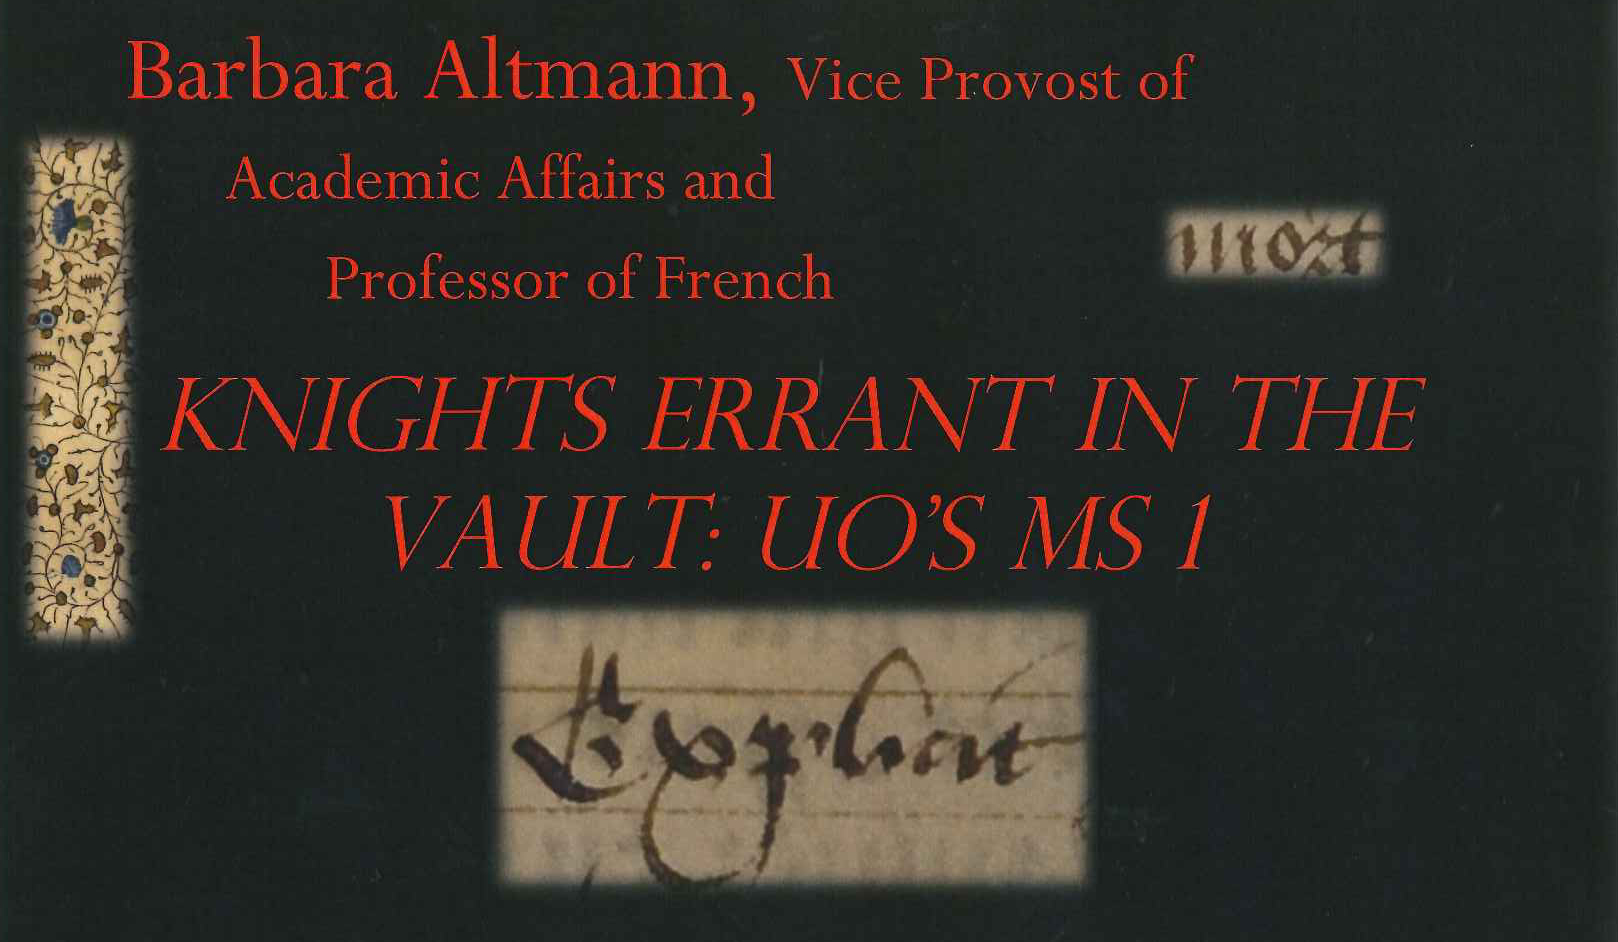 altmann talk flyer excerpt